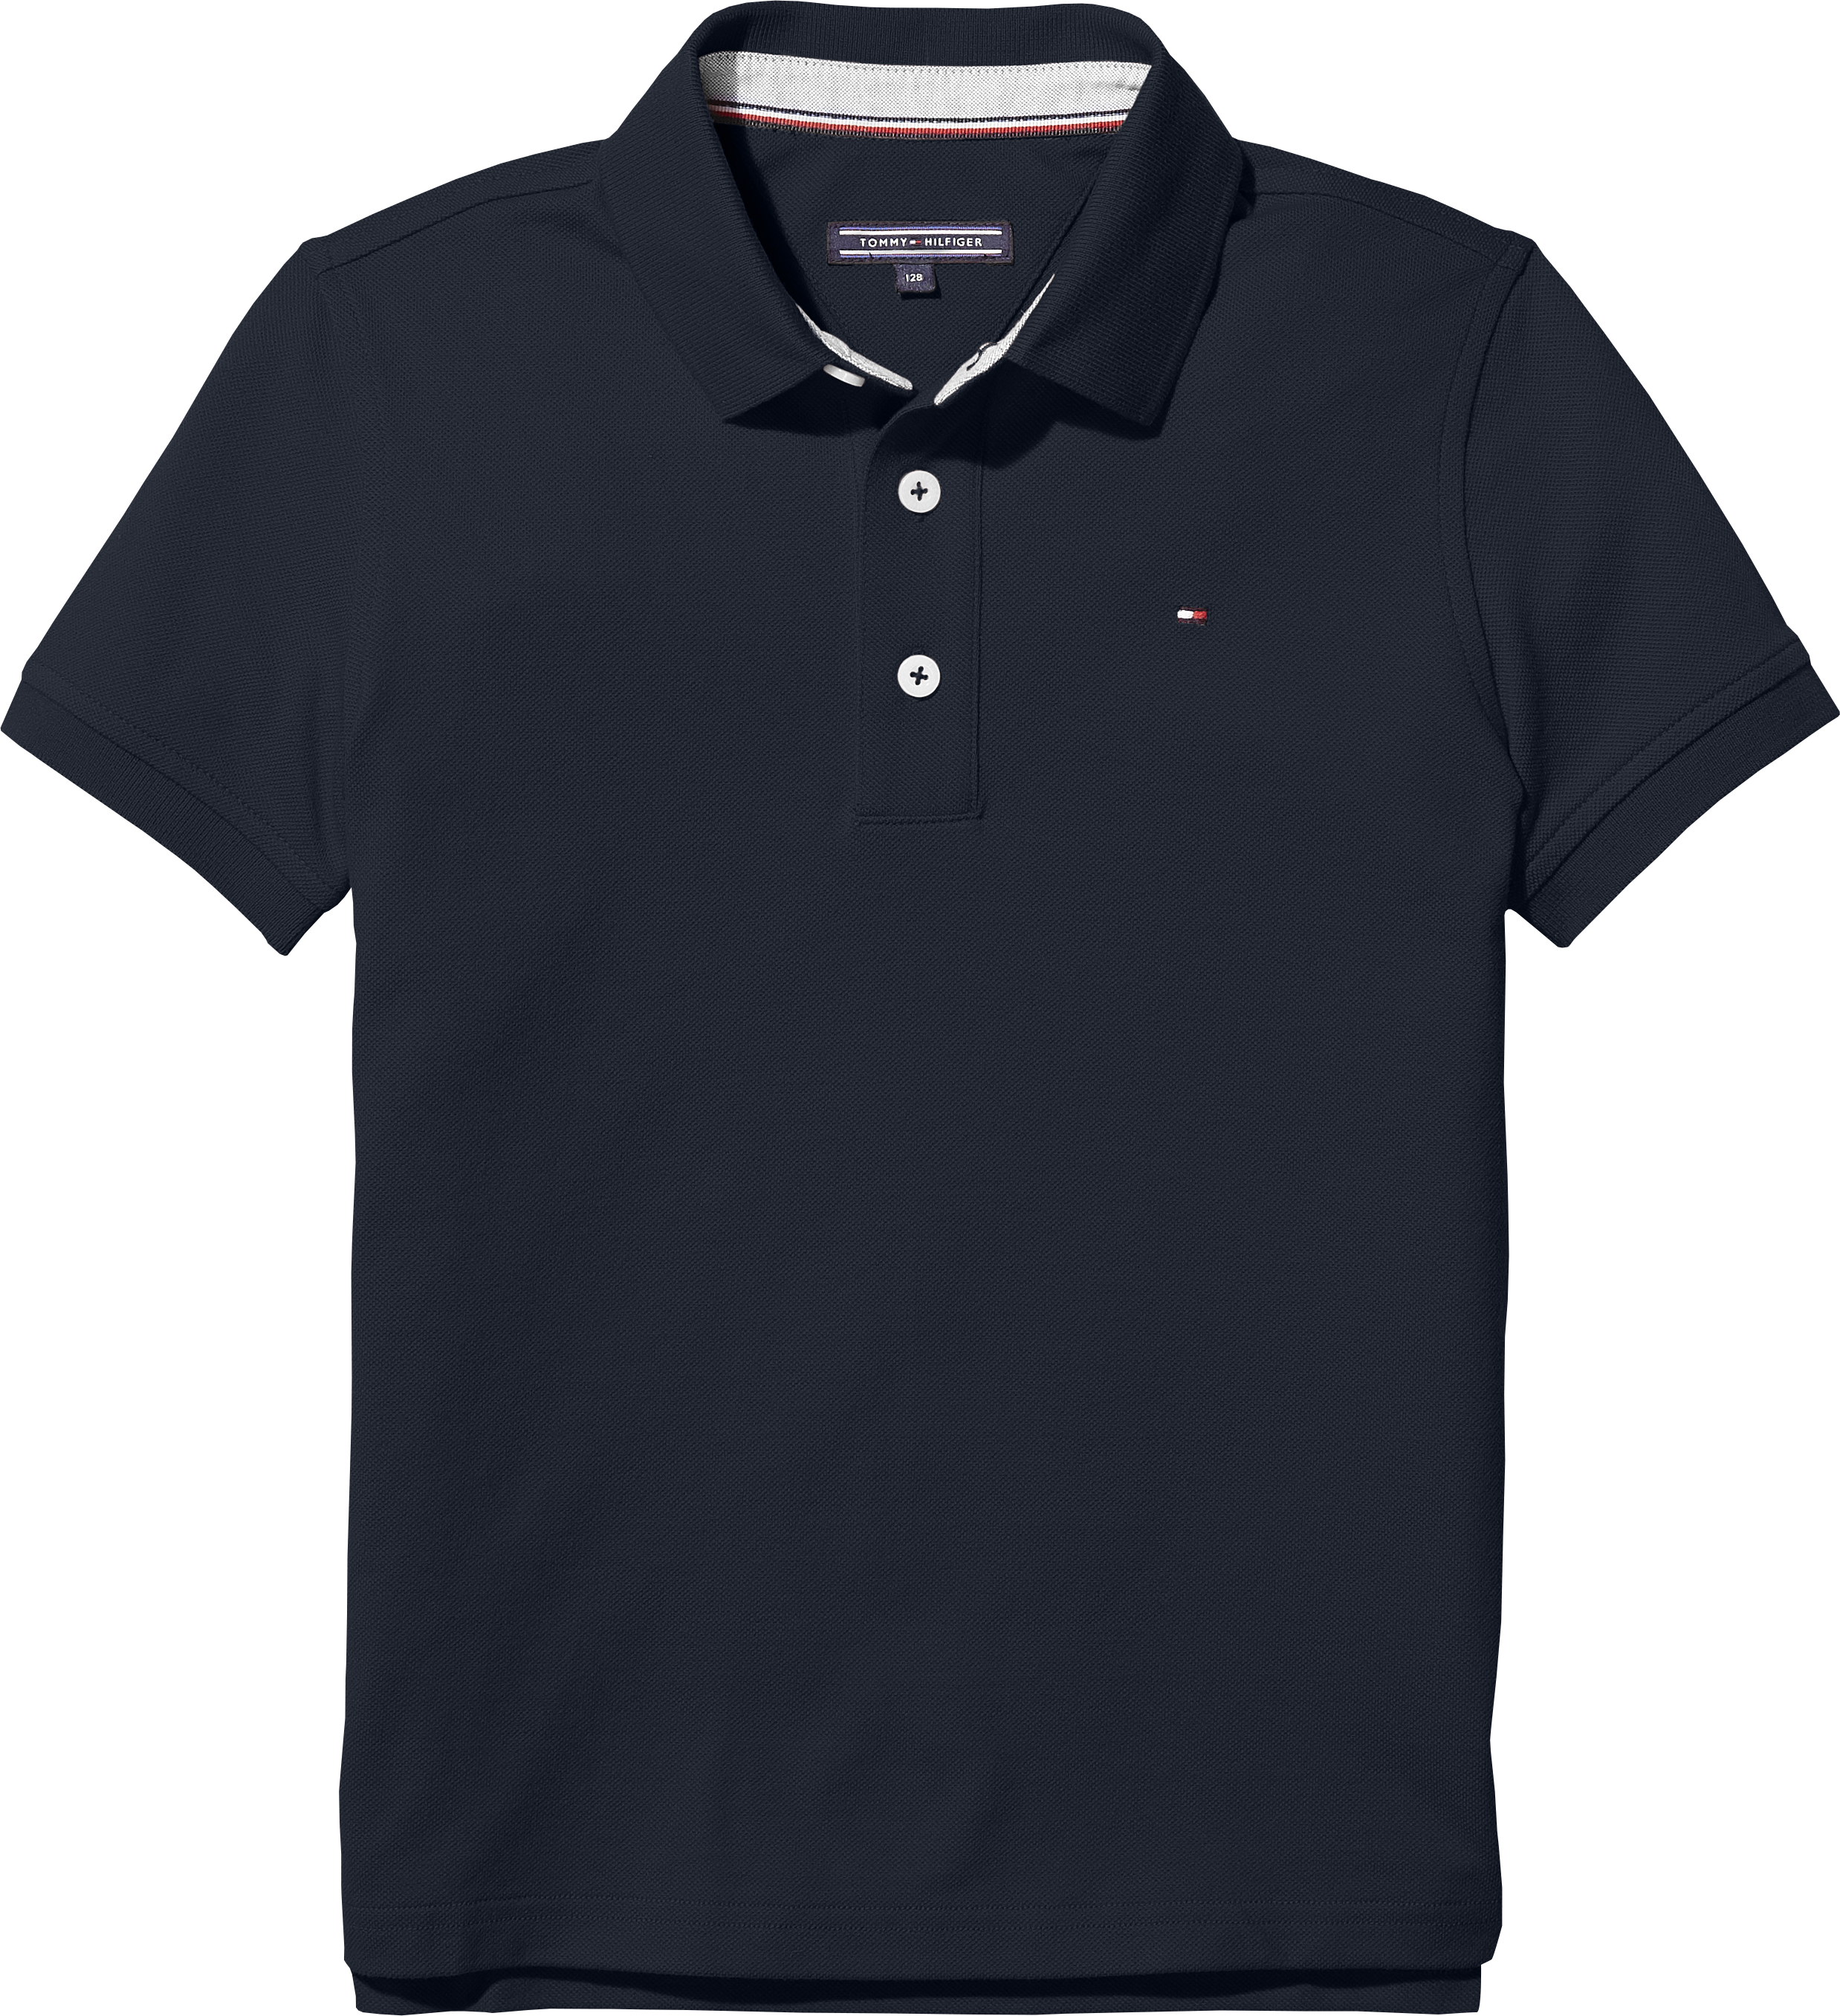 Tommy Hilfiger SS polo